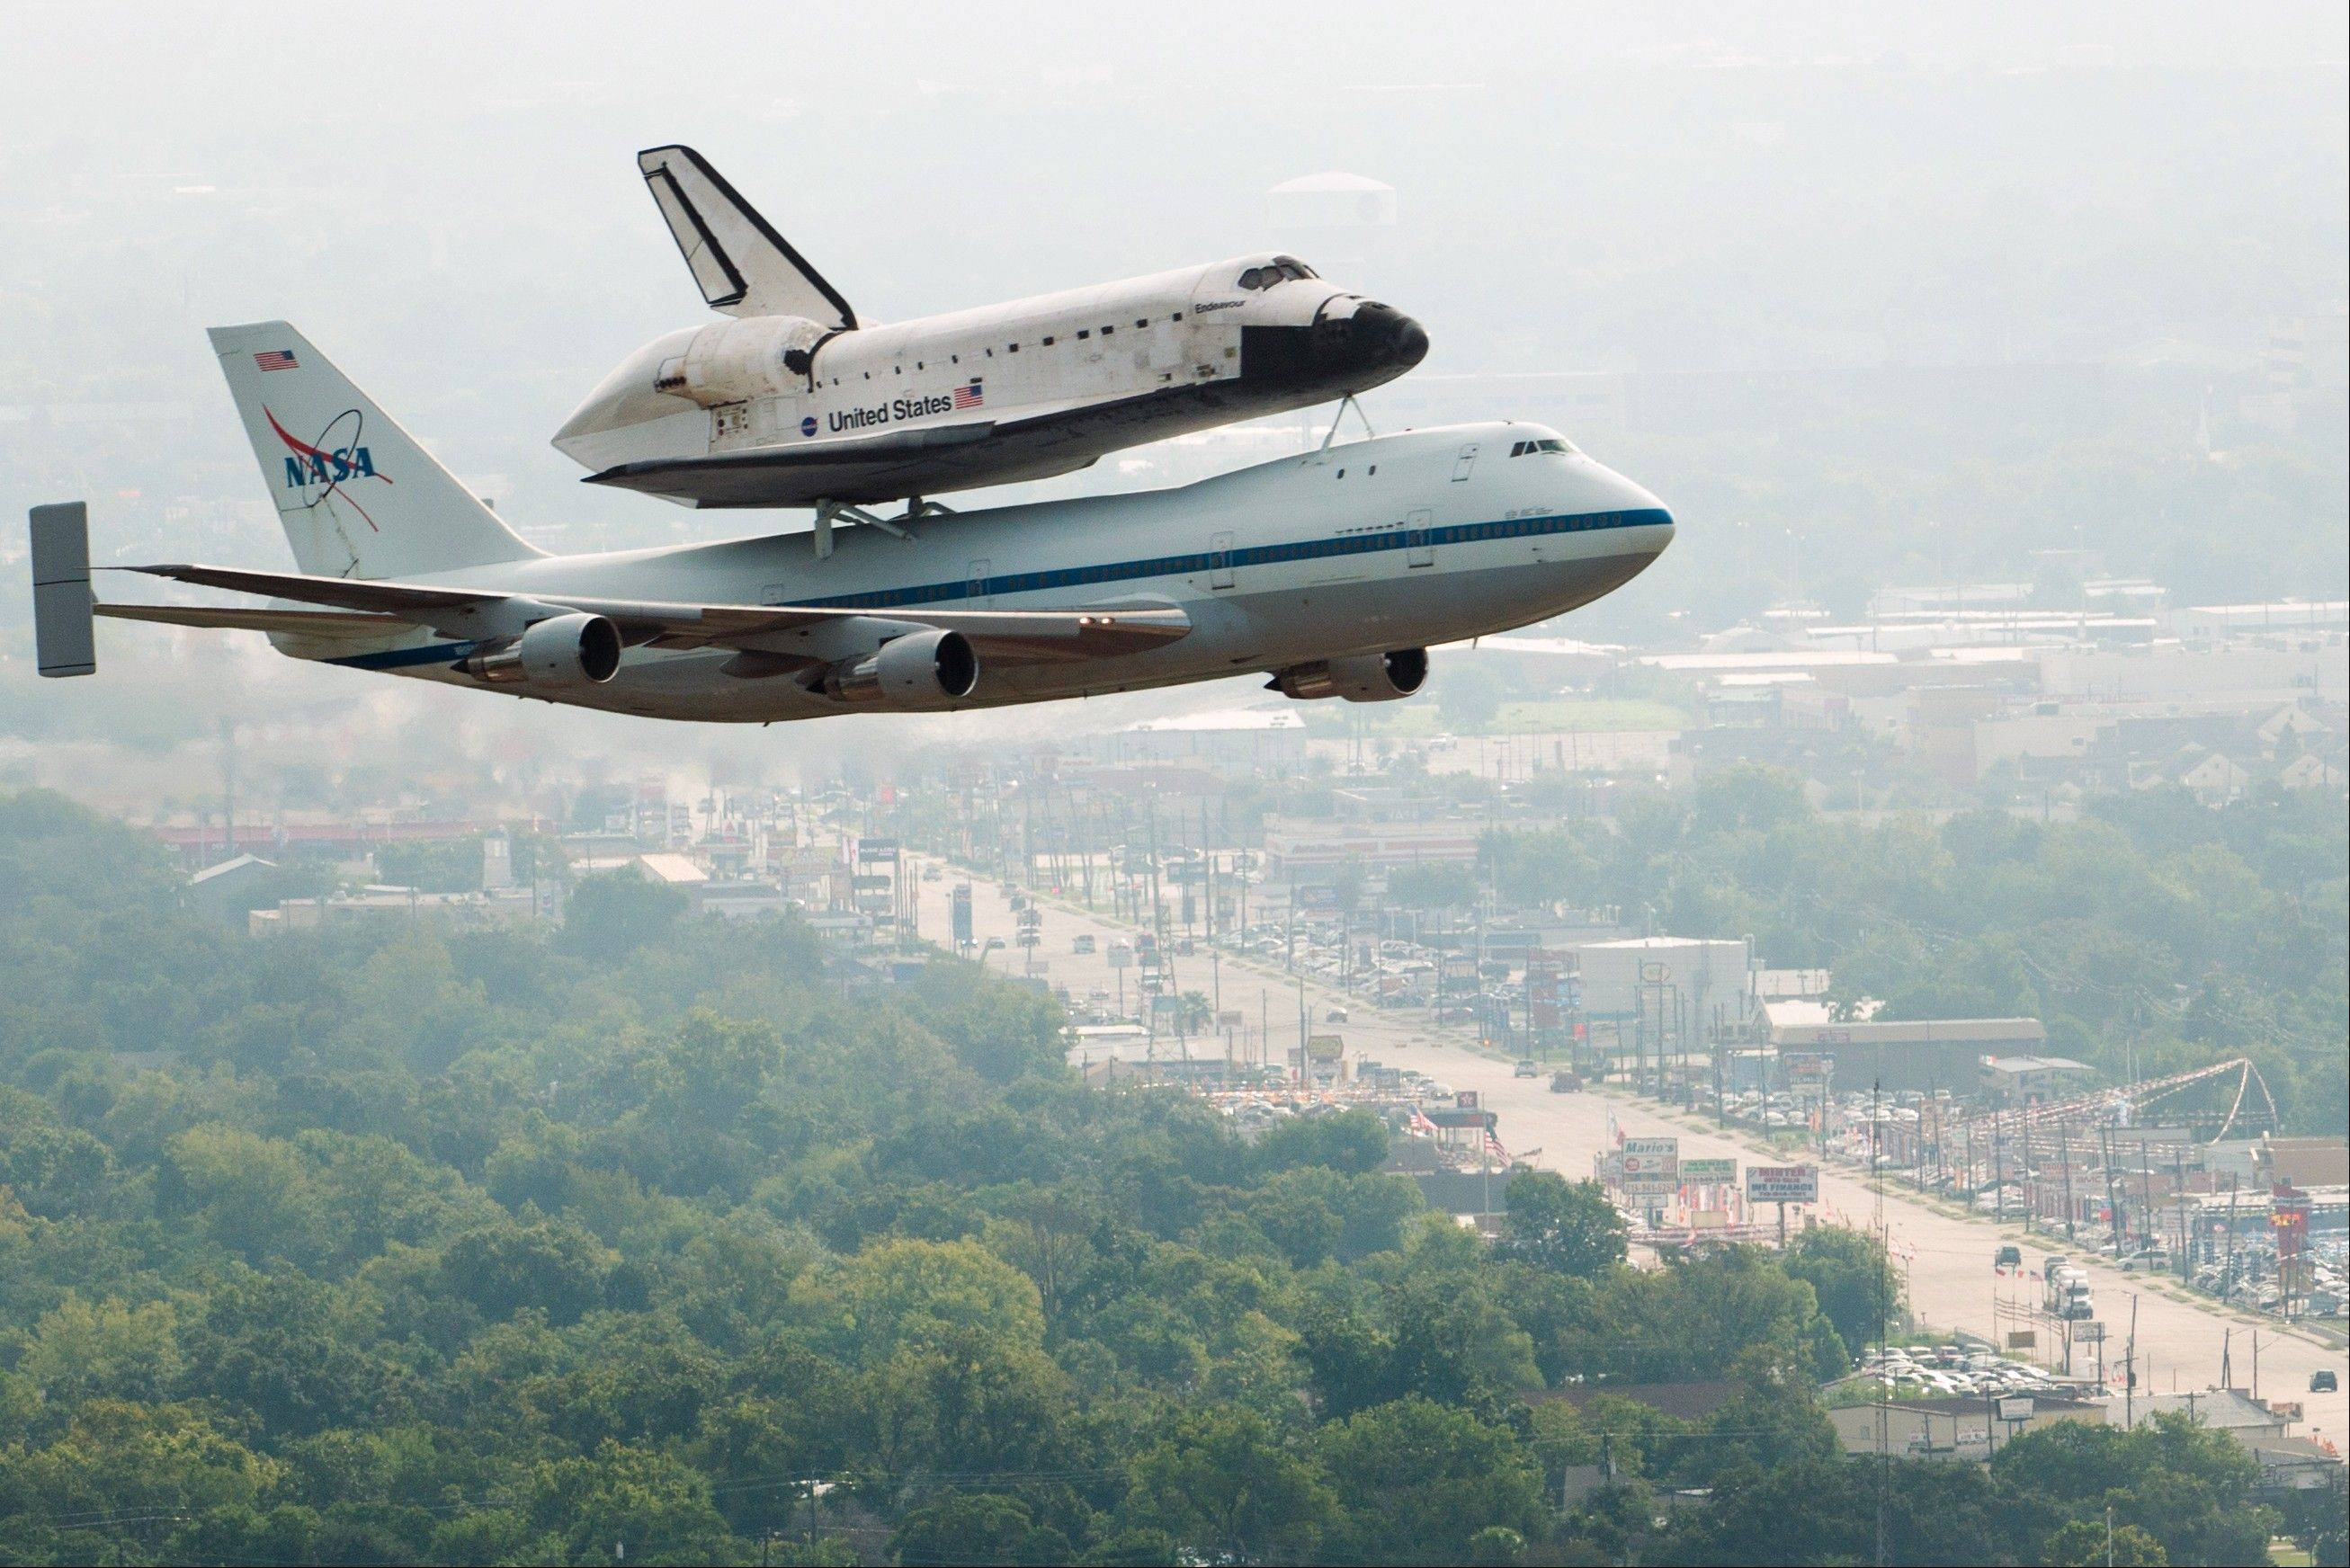 The space shuttle Endeavour, carried atop NASA's 747 Shuttle Carrier Aircraft, passes over neighborhoods near Hobby Airport during a flyover on Wednesday in Houston. Endeavour stopped in Houston on its way from the Kennedy Space Center to the California Science Center in Los Angeles, where it will be placed on permanent display.